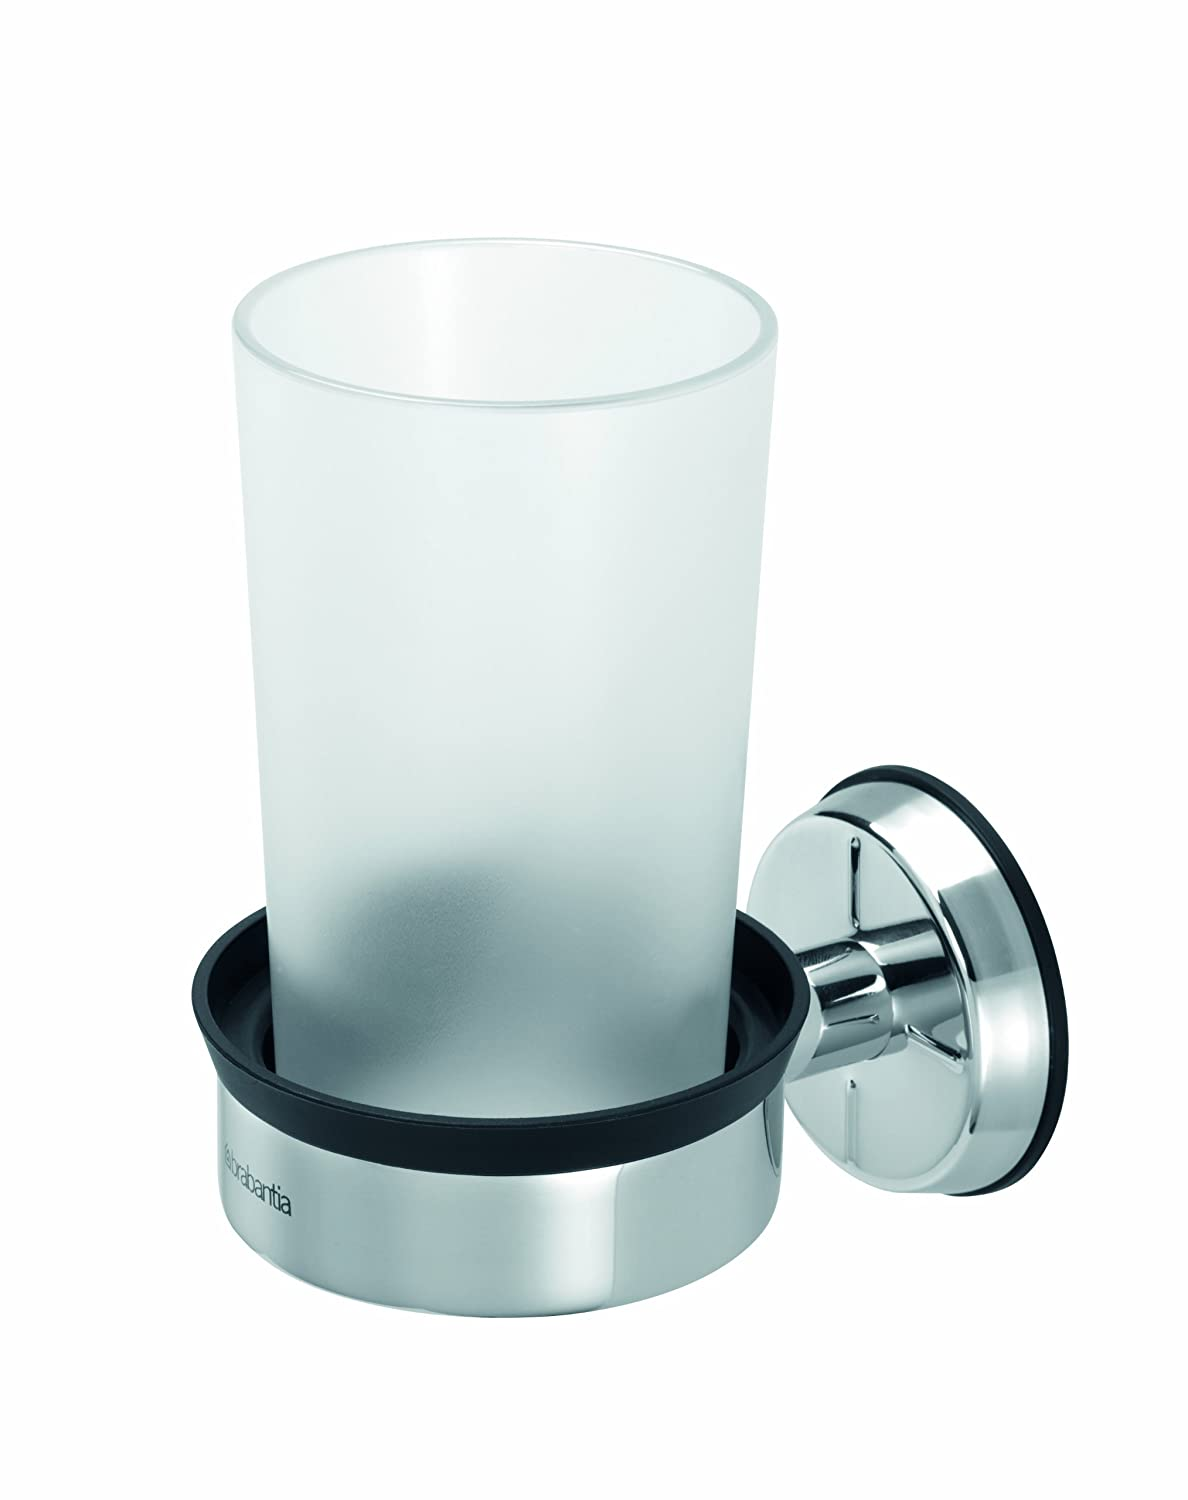 Brabantia Single Cup Holder - Brilliant Steel 427480